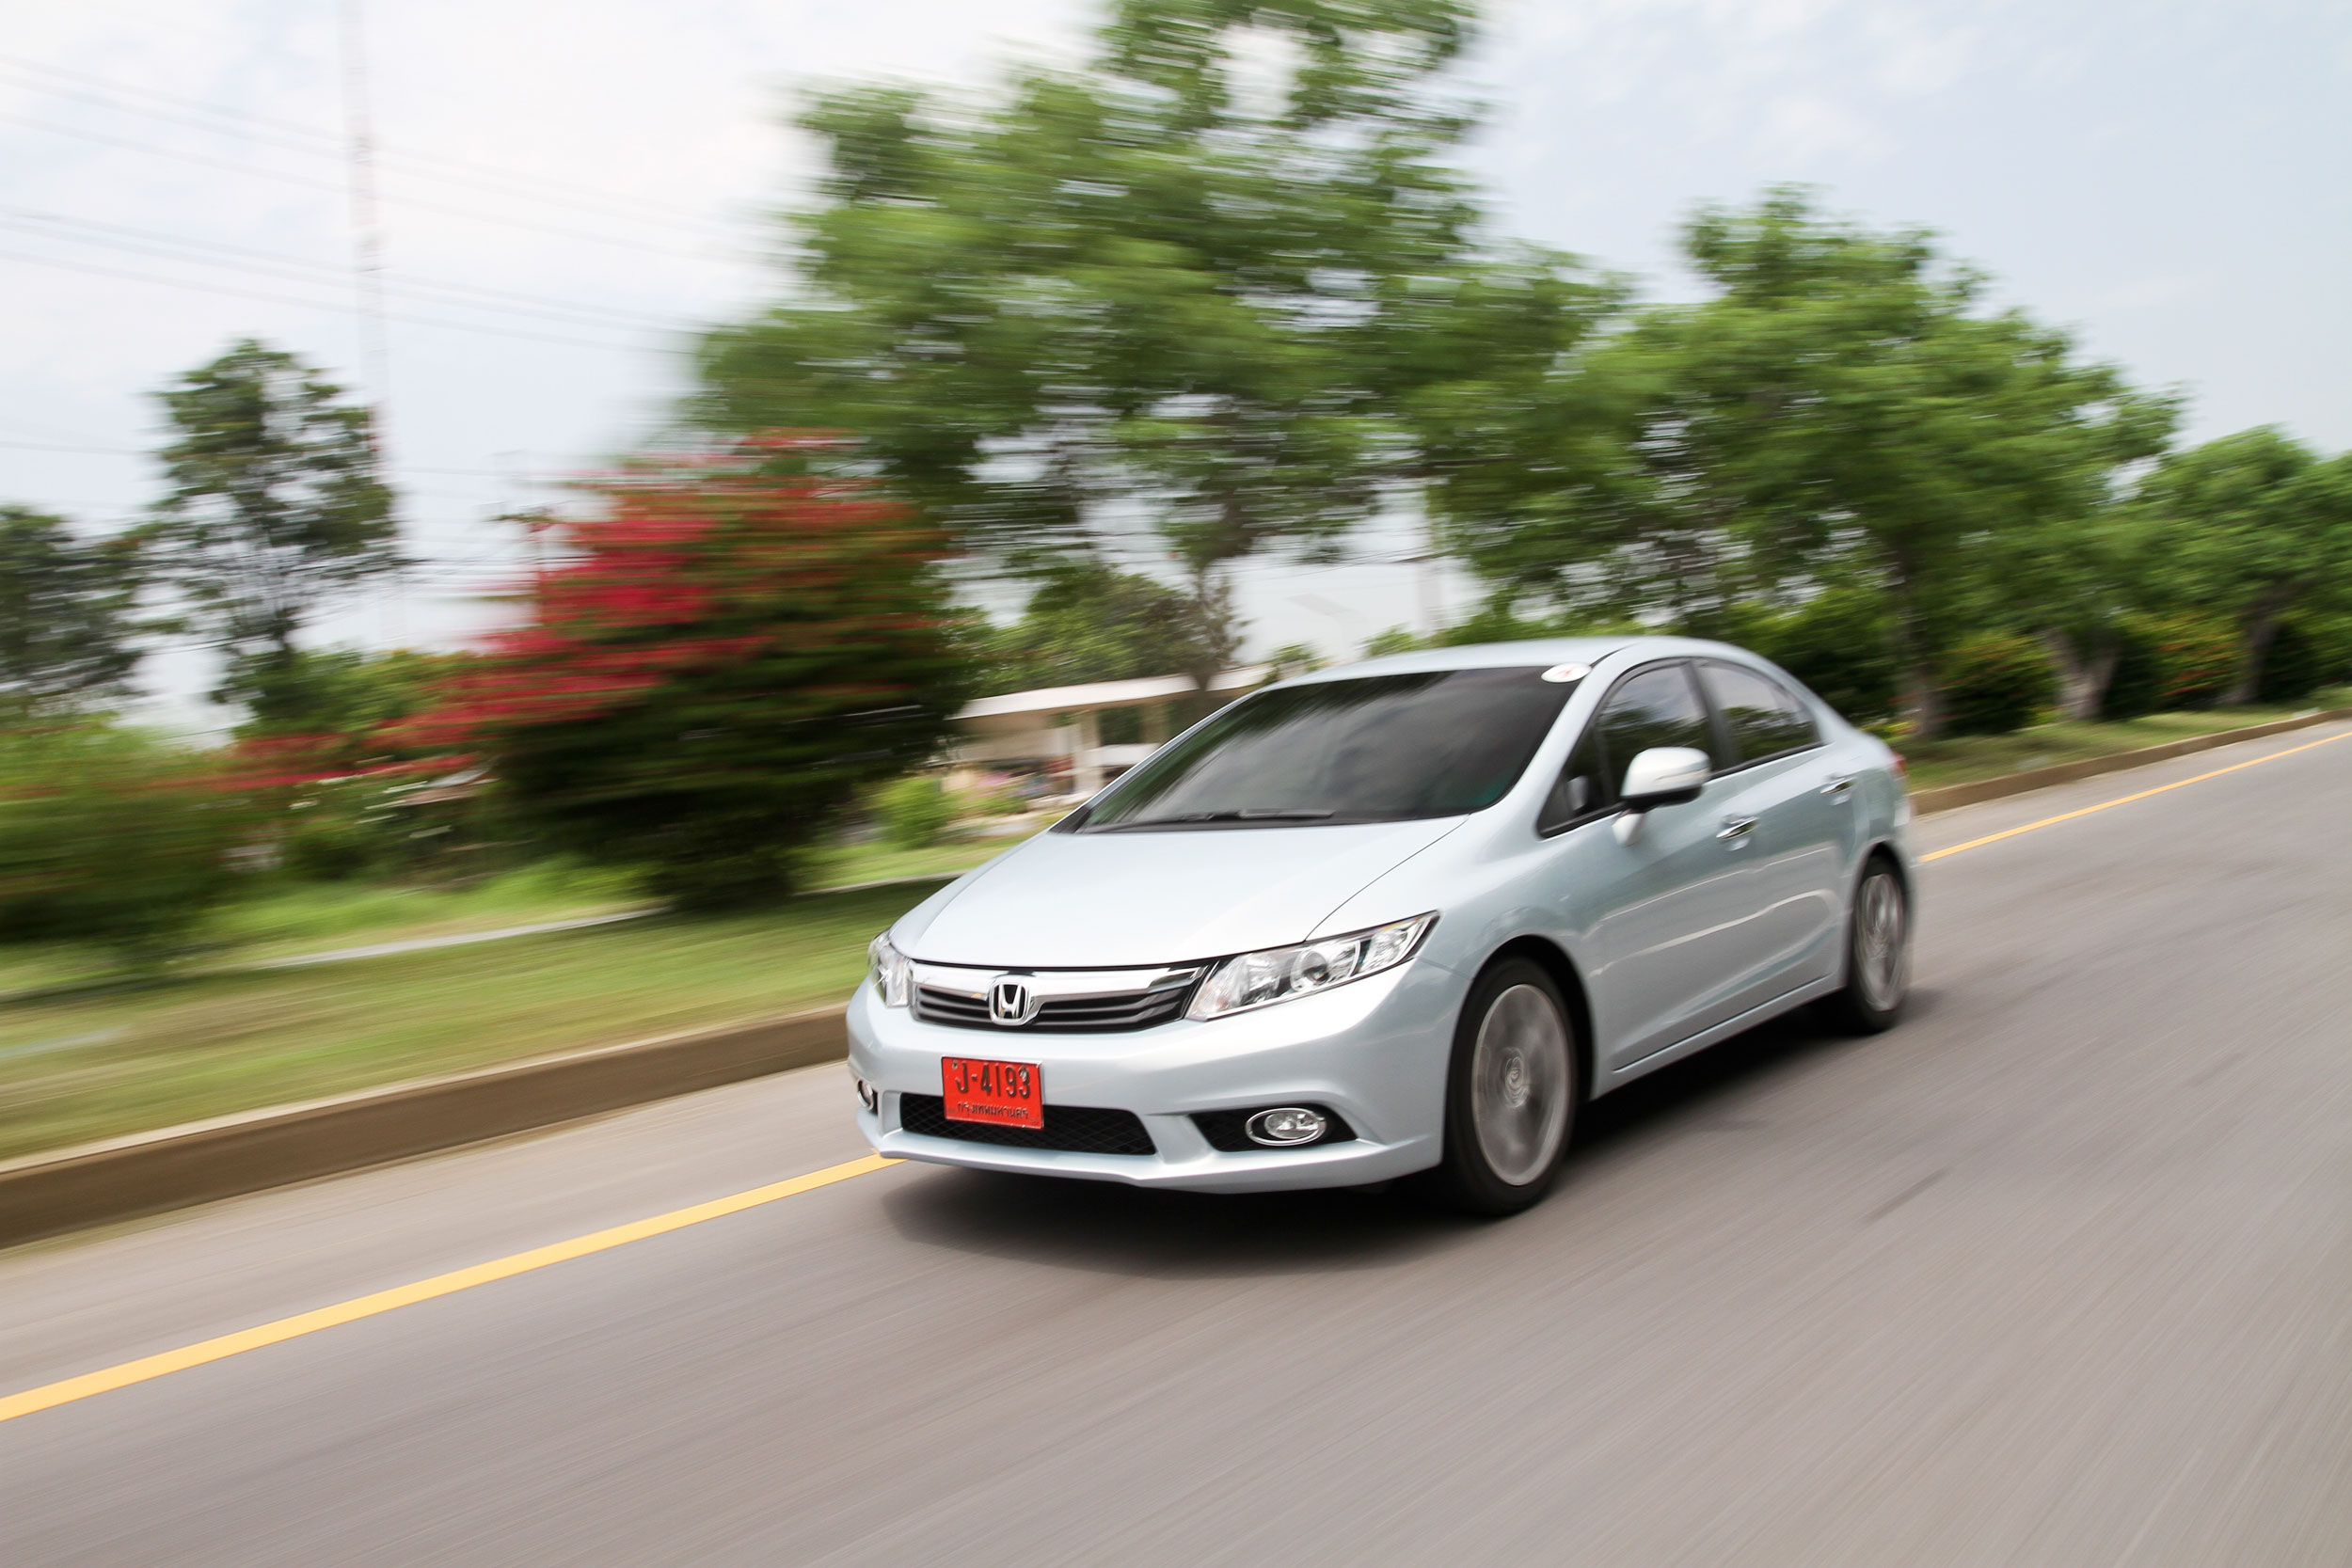 Driven 2012 Honda Civic Fb 9th Gen Previewed In